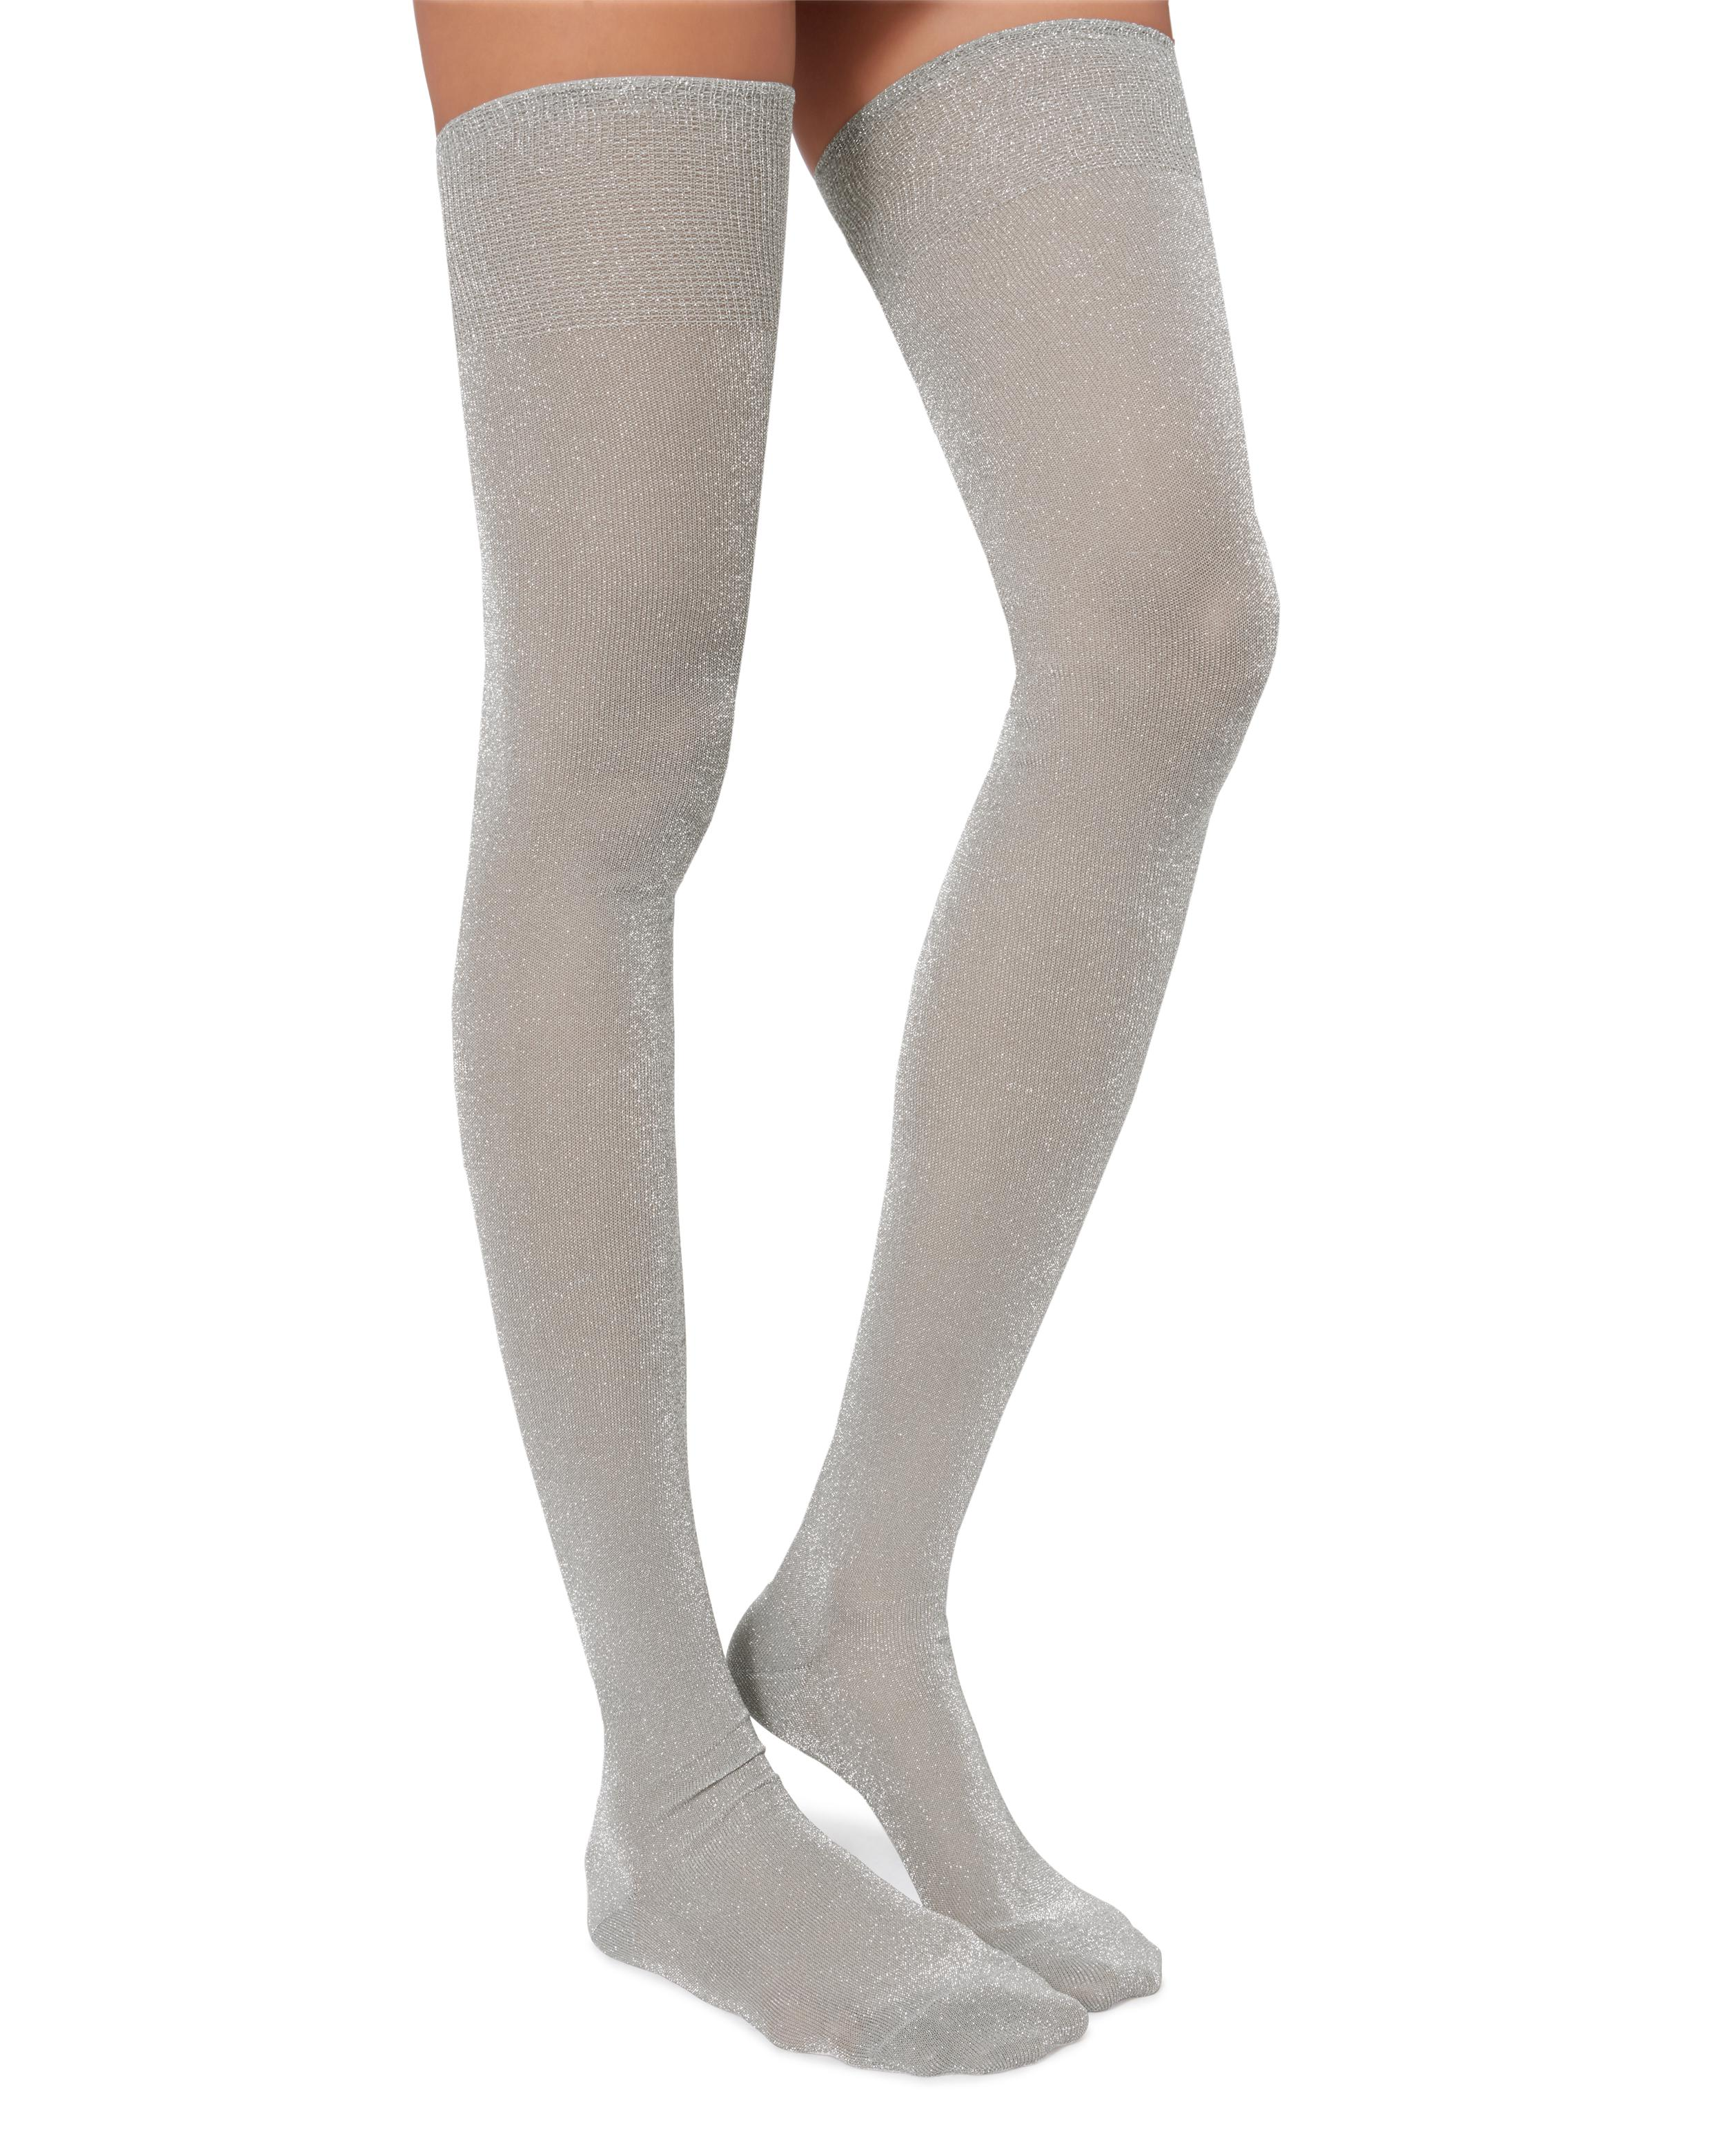 86dc8ac13d9 Missoni Calze Lurex Silver Thigh High Socks in Metallic - Lyst